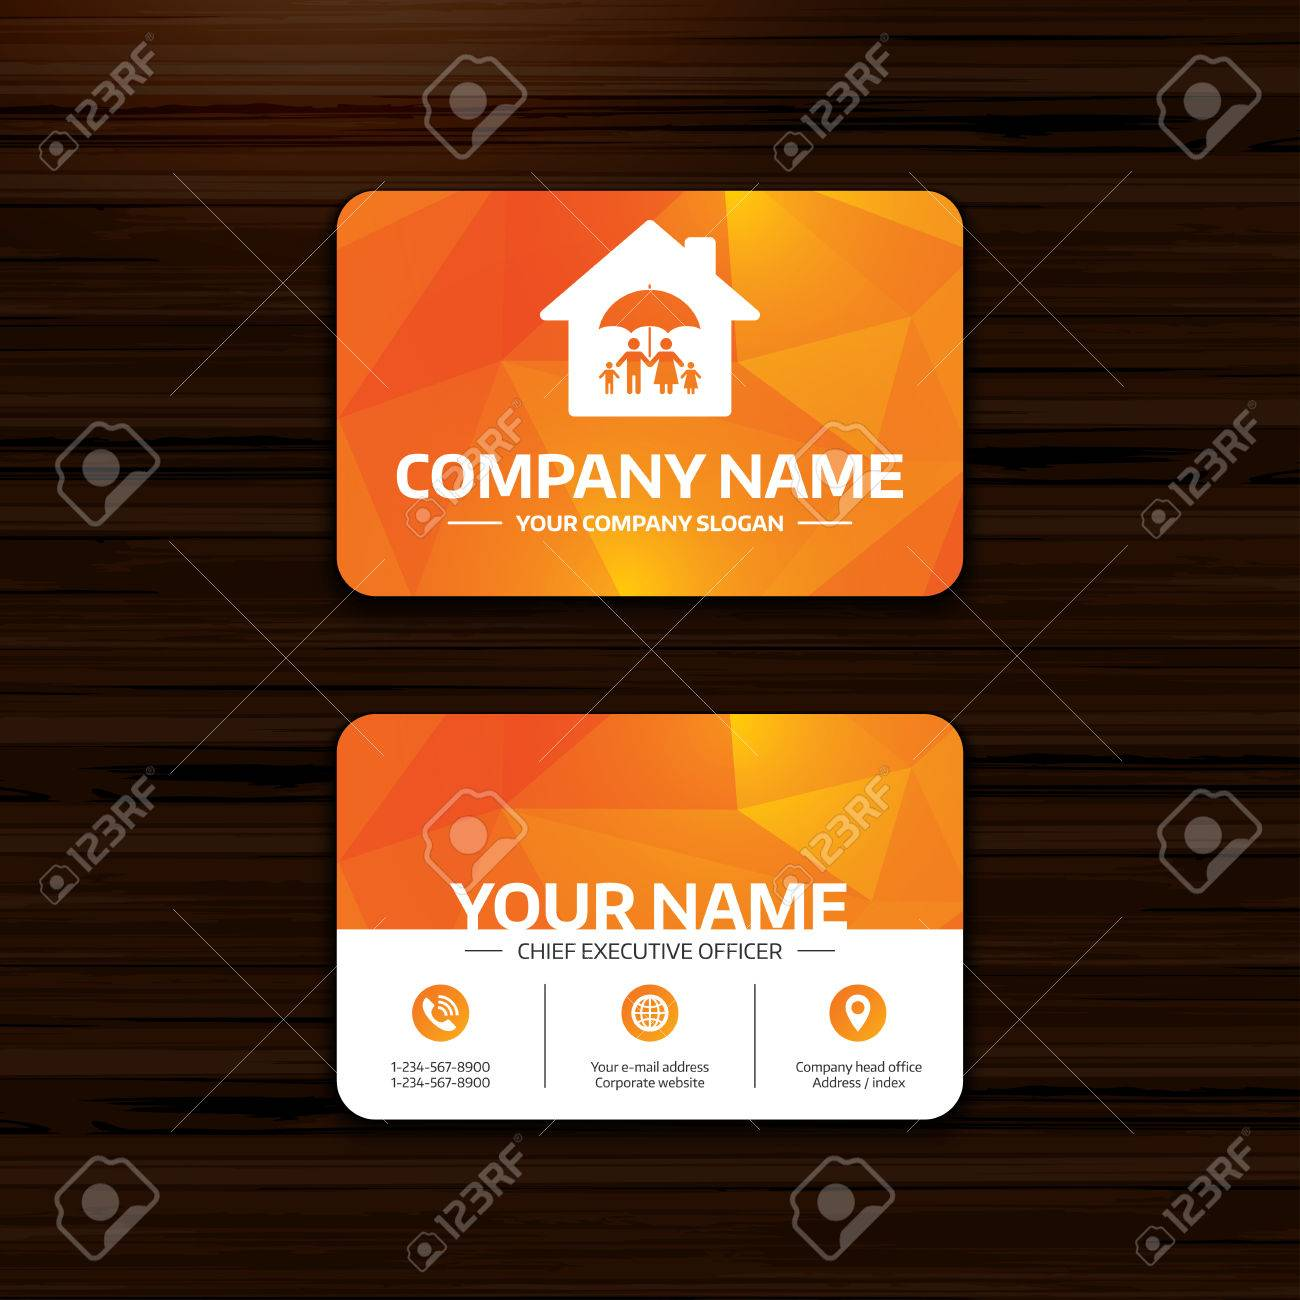 Business or visiting card template complete family home insurance business or visiting card template complete family home insurance sign icon umbrella symbol colourmoves